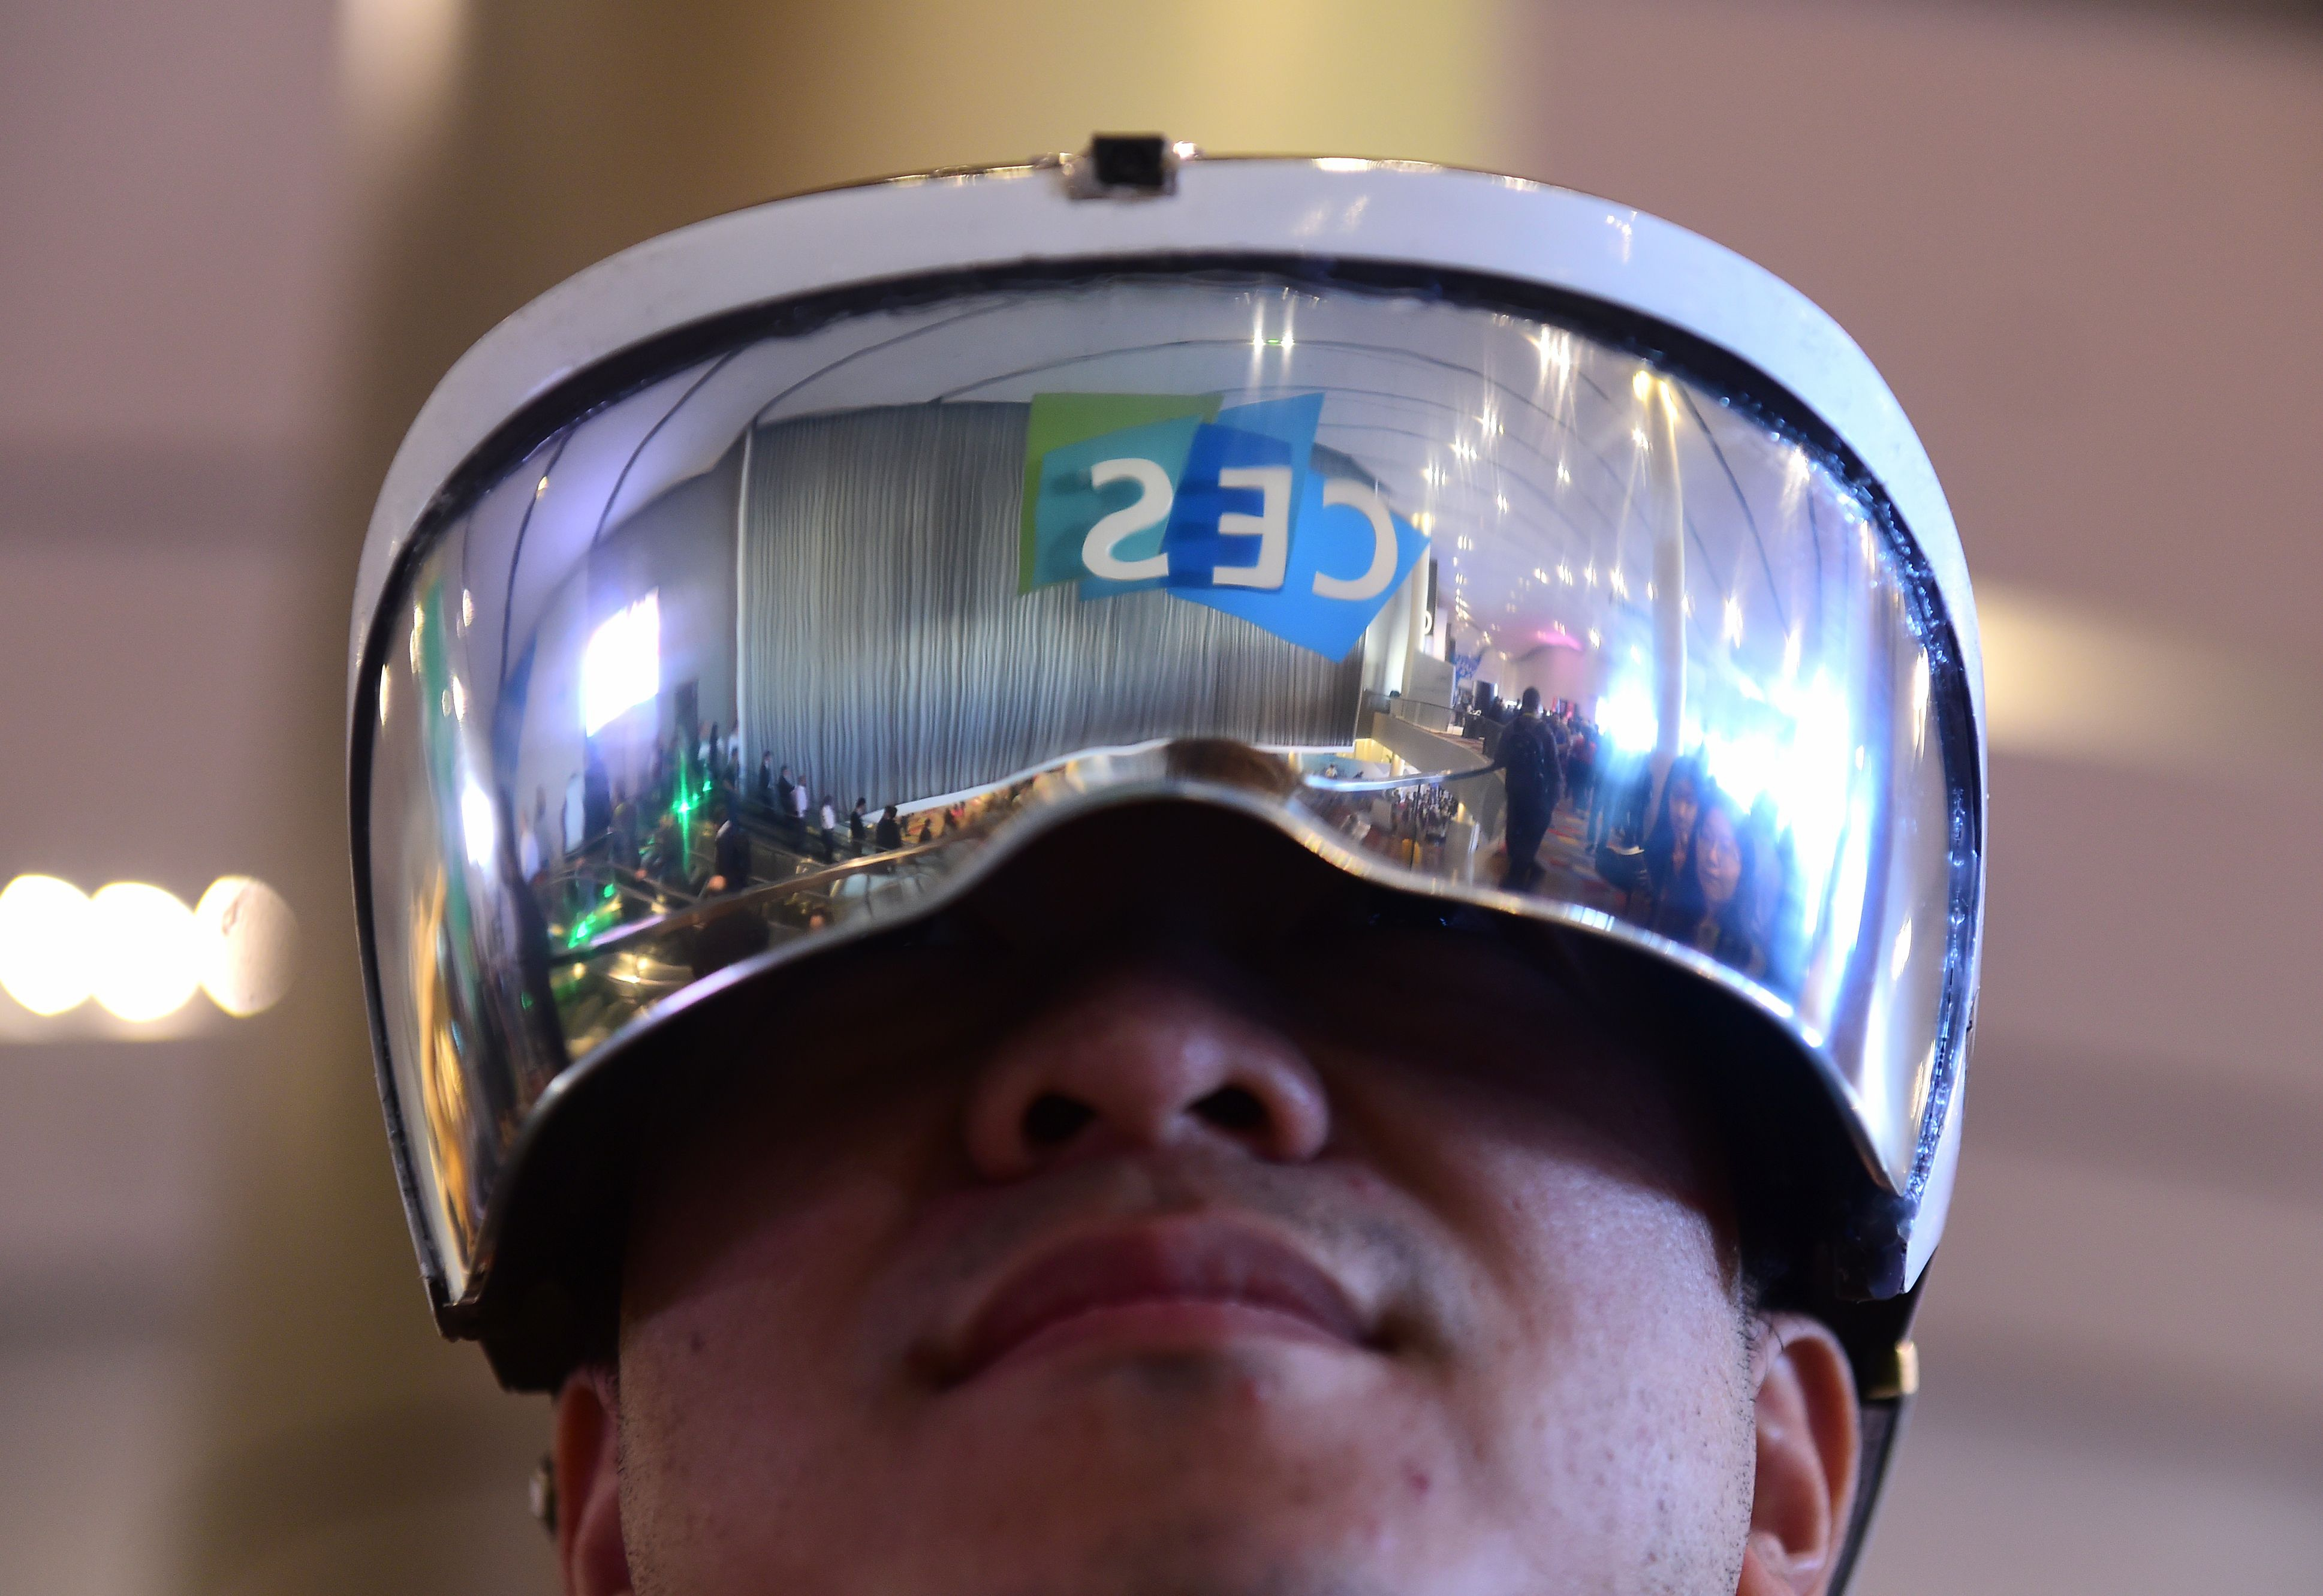 Attendee Wei Rongjie wears a working prototype of his HoloSeer AR/VR all-in-one agumented reality and virtual reality headseat, January 6, 2016 at the CES 2016 Consumer Electronics Show in Las Vegas, Nevada.